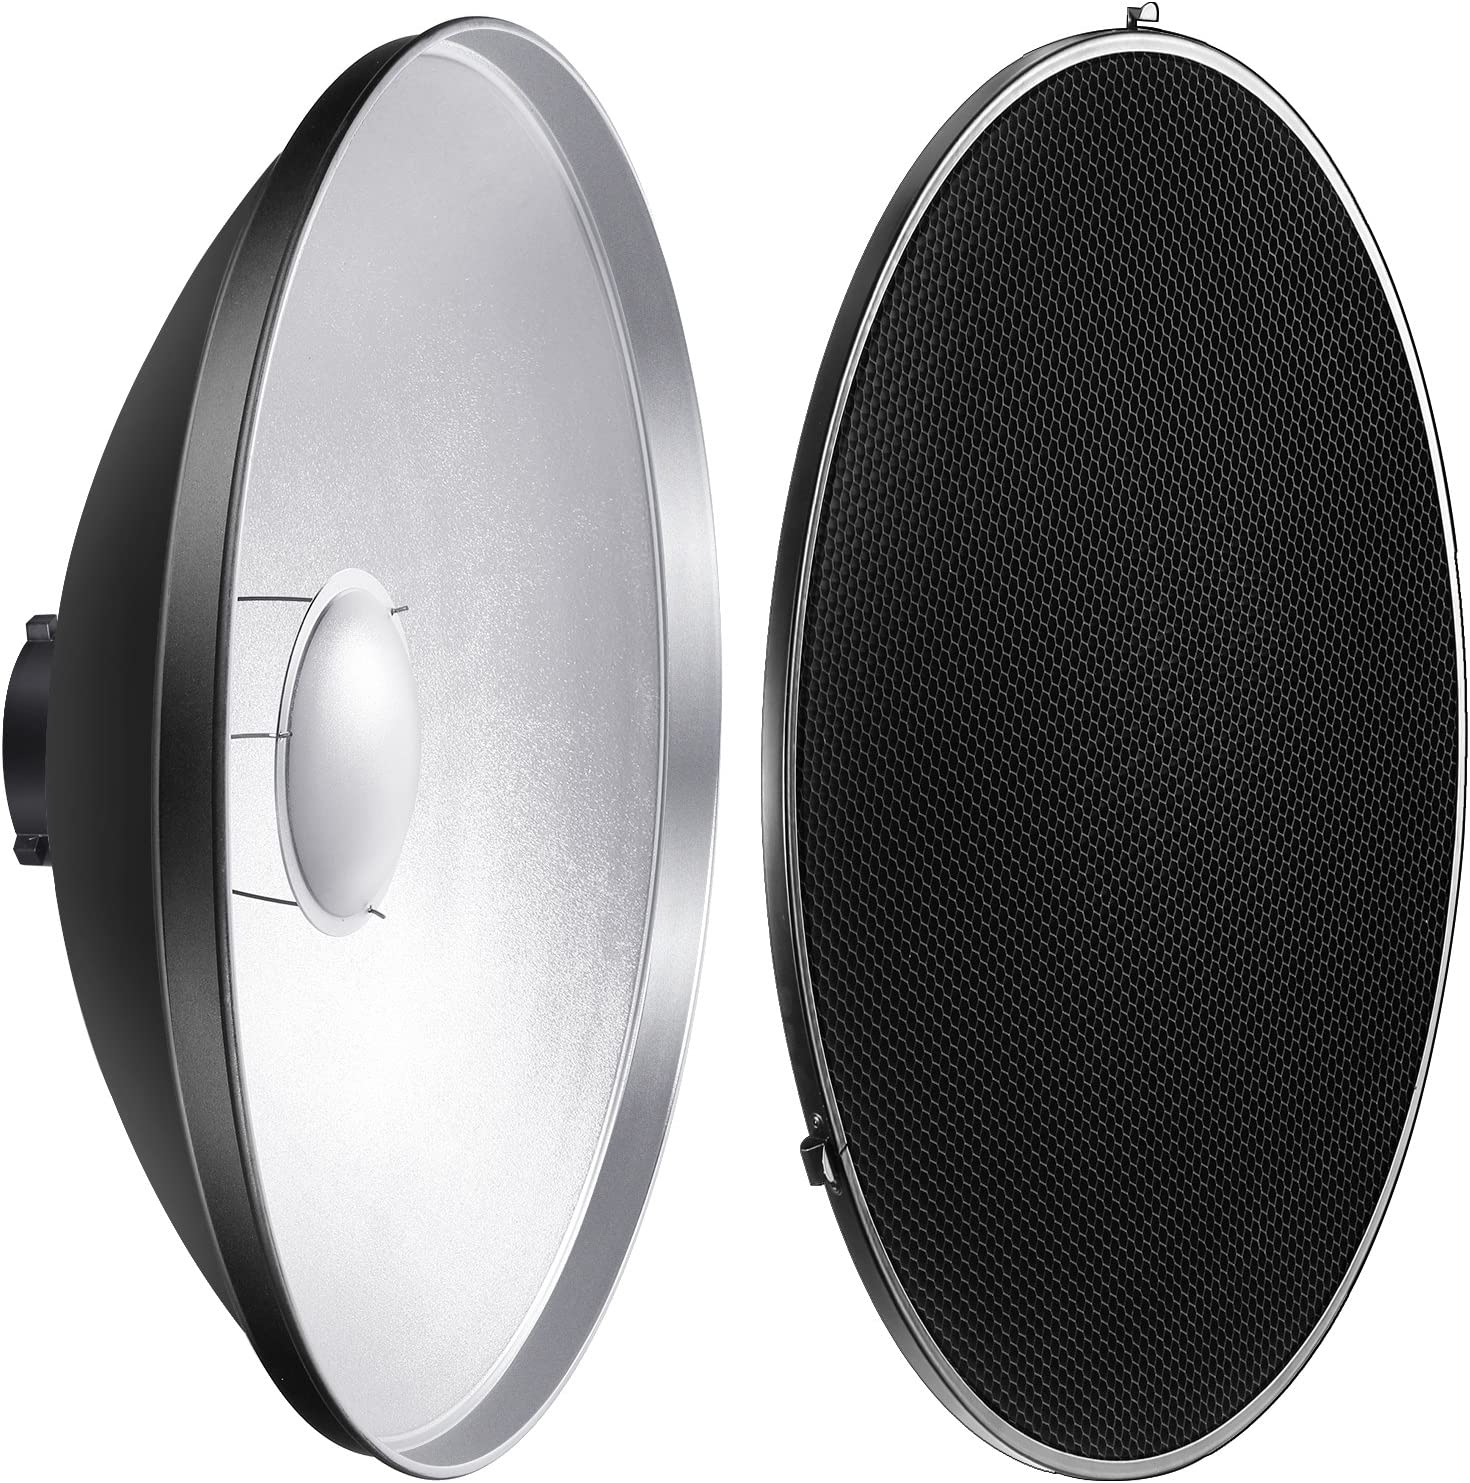 CanadianStudio 16 Interchangeable Beauty Dish Photo Studio with Honeycomb Grid for Bowens